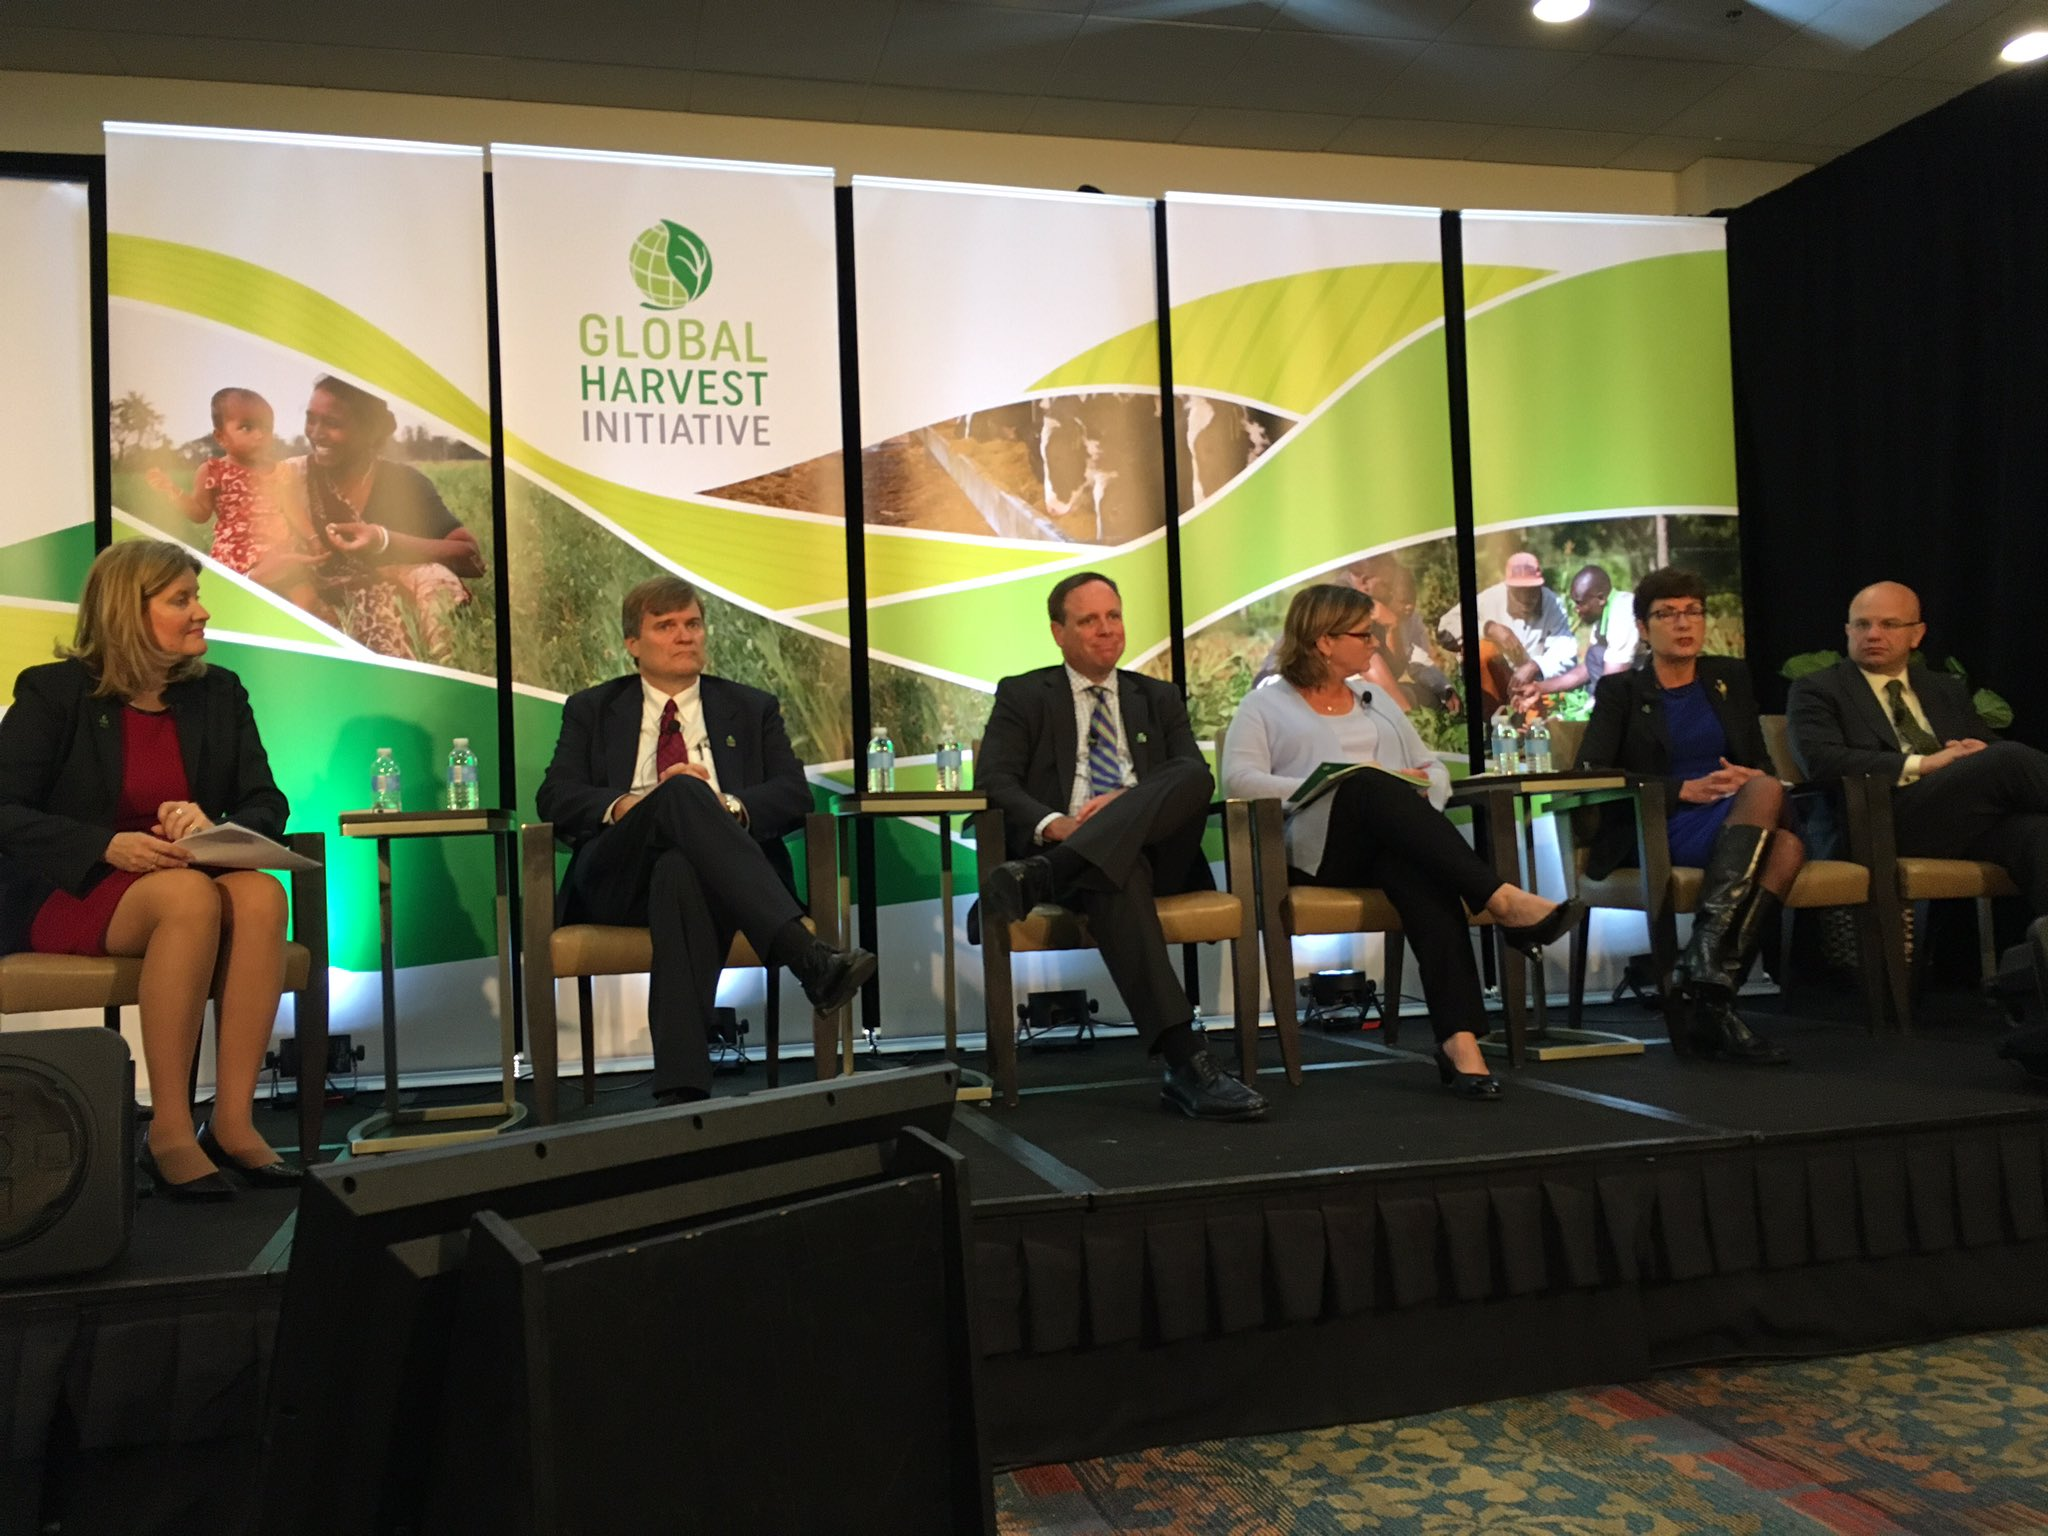 Impressive public-private panel at #worldfoodprize during the launch of #gapreport by @Harvest2050. https://t.co/s98I4tBsYl